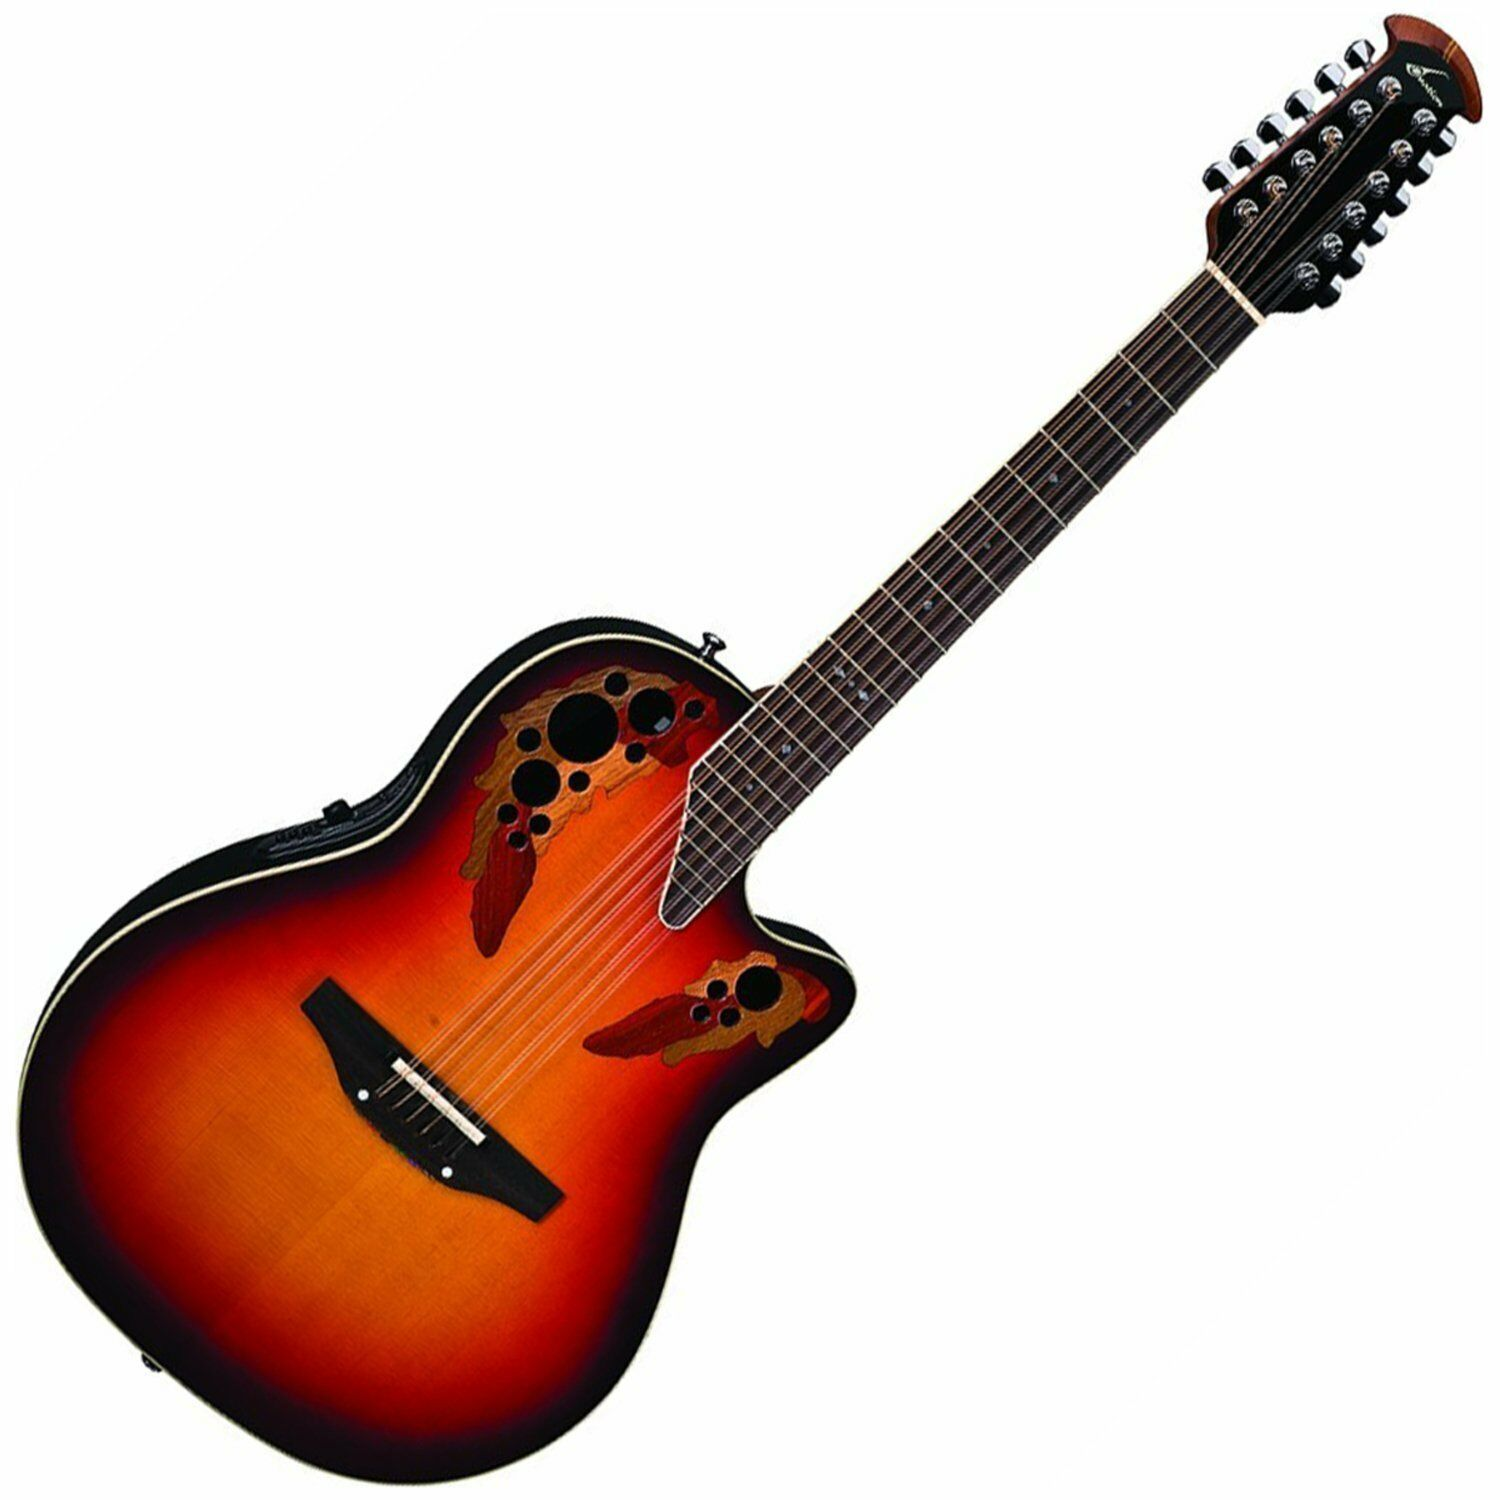 Ovation Standard Elite 2758AX-NEB 12-String Acoustic-Electric Guitar AASpruceTop